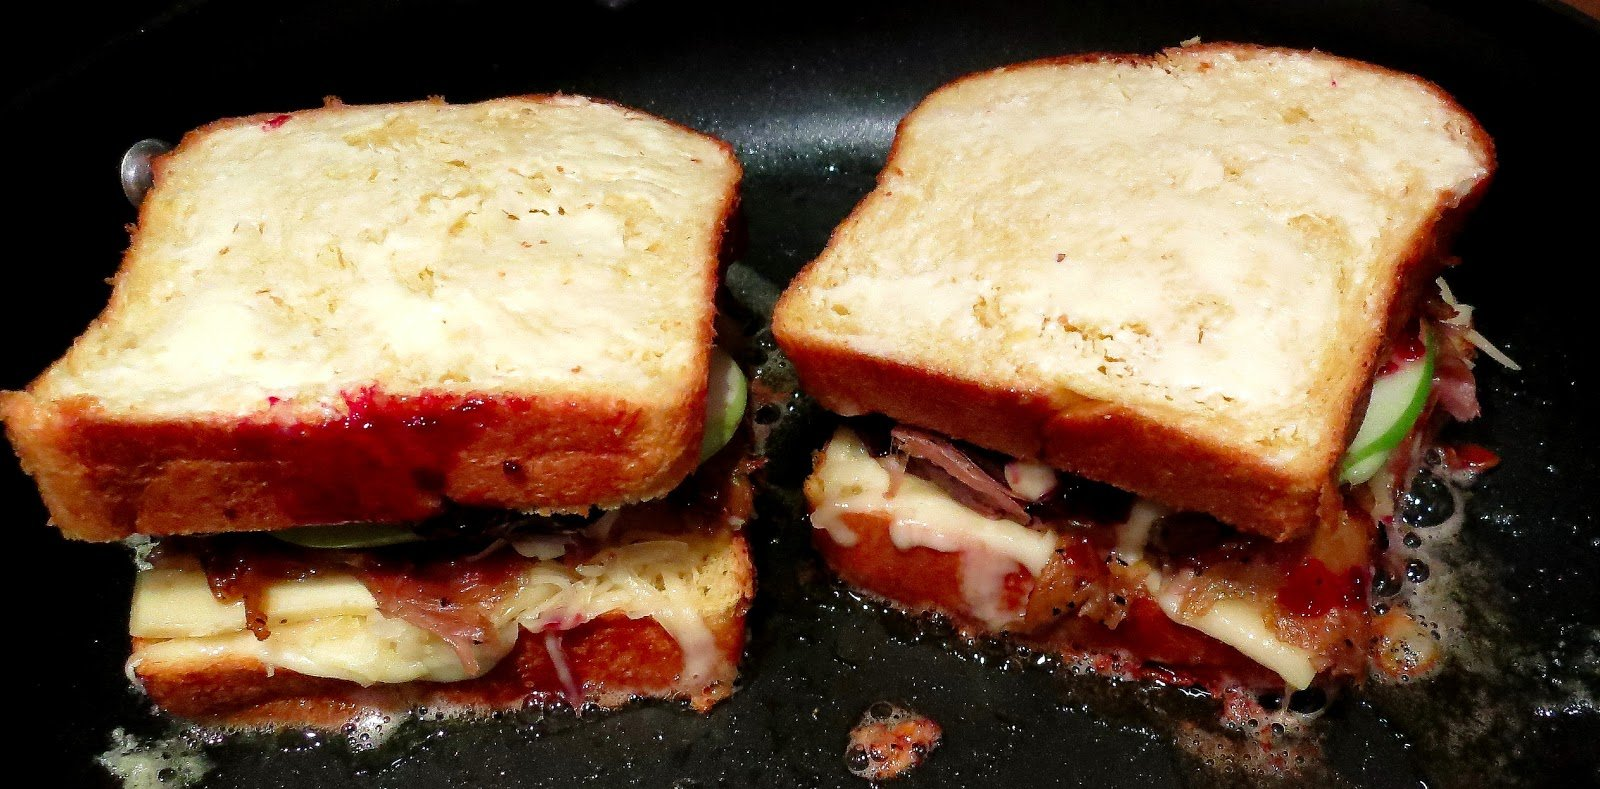 A close up of a sandwich in a pan.